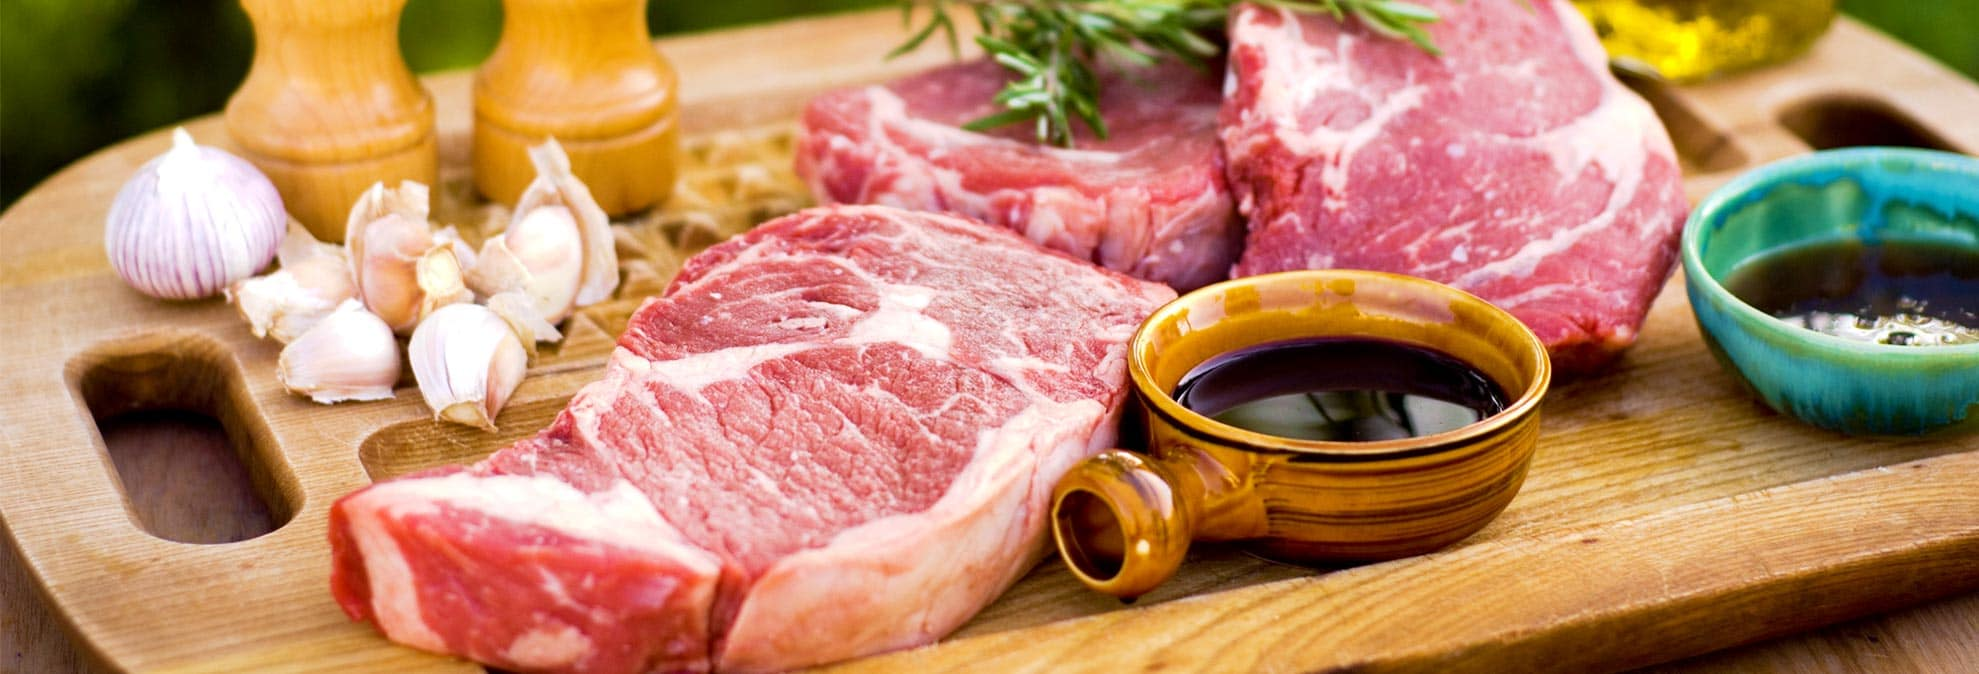 How to Marinate Meat Safely